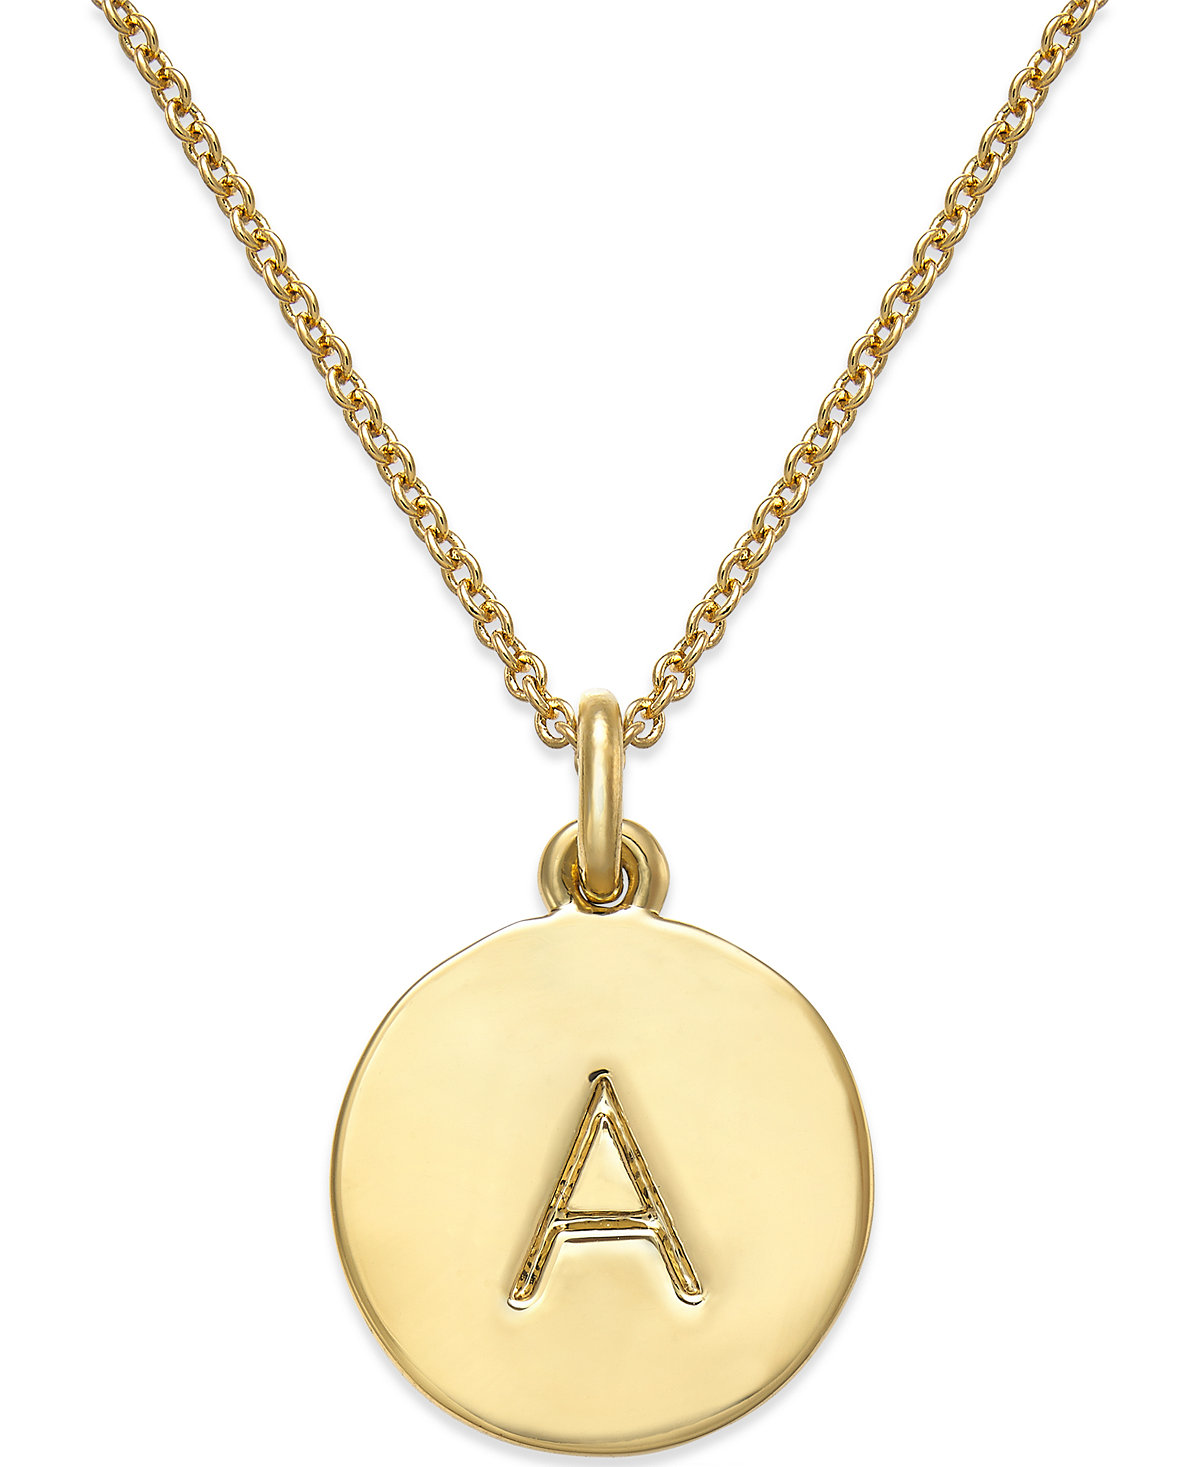 kate spade new york 12k GoldPlated Initials Pendant Necklace $58